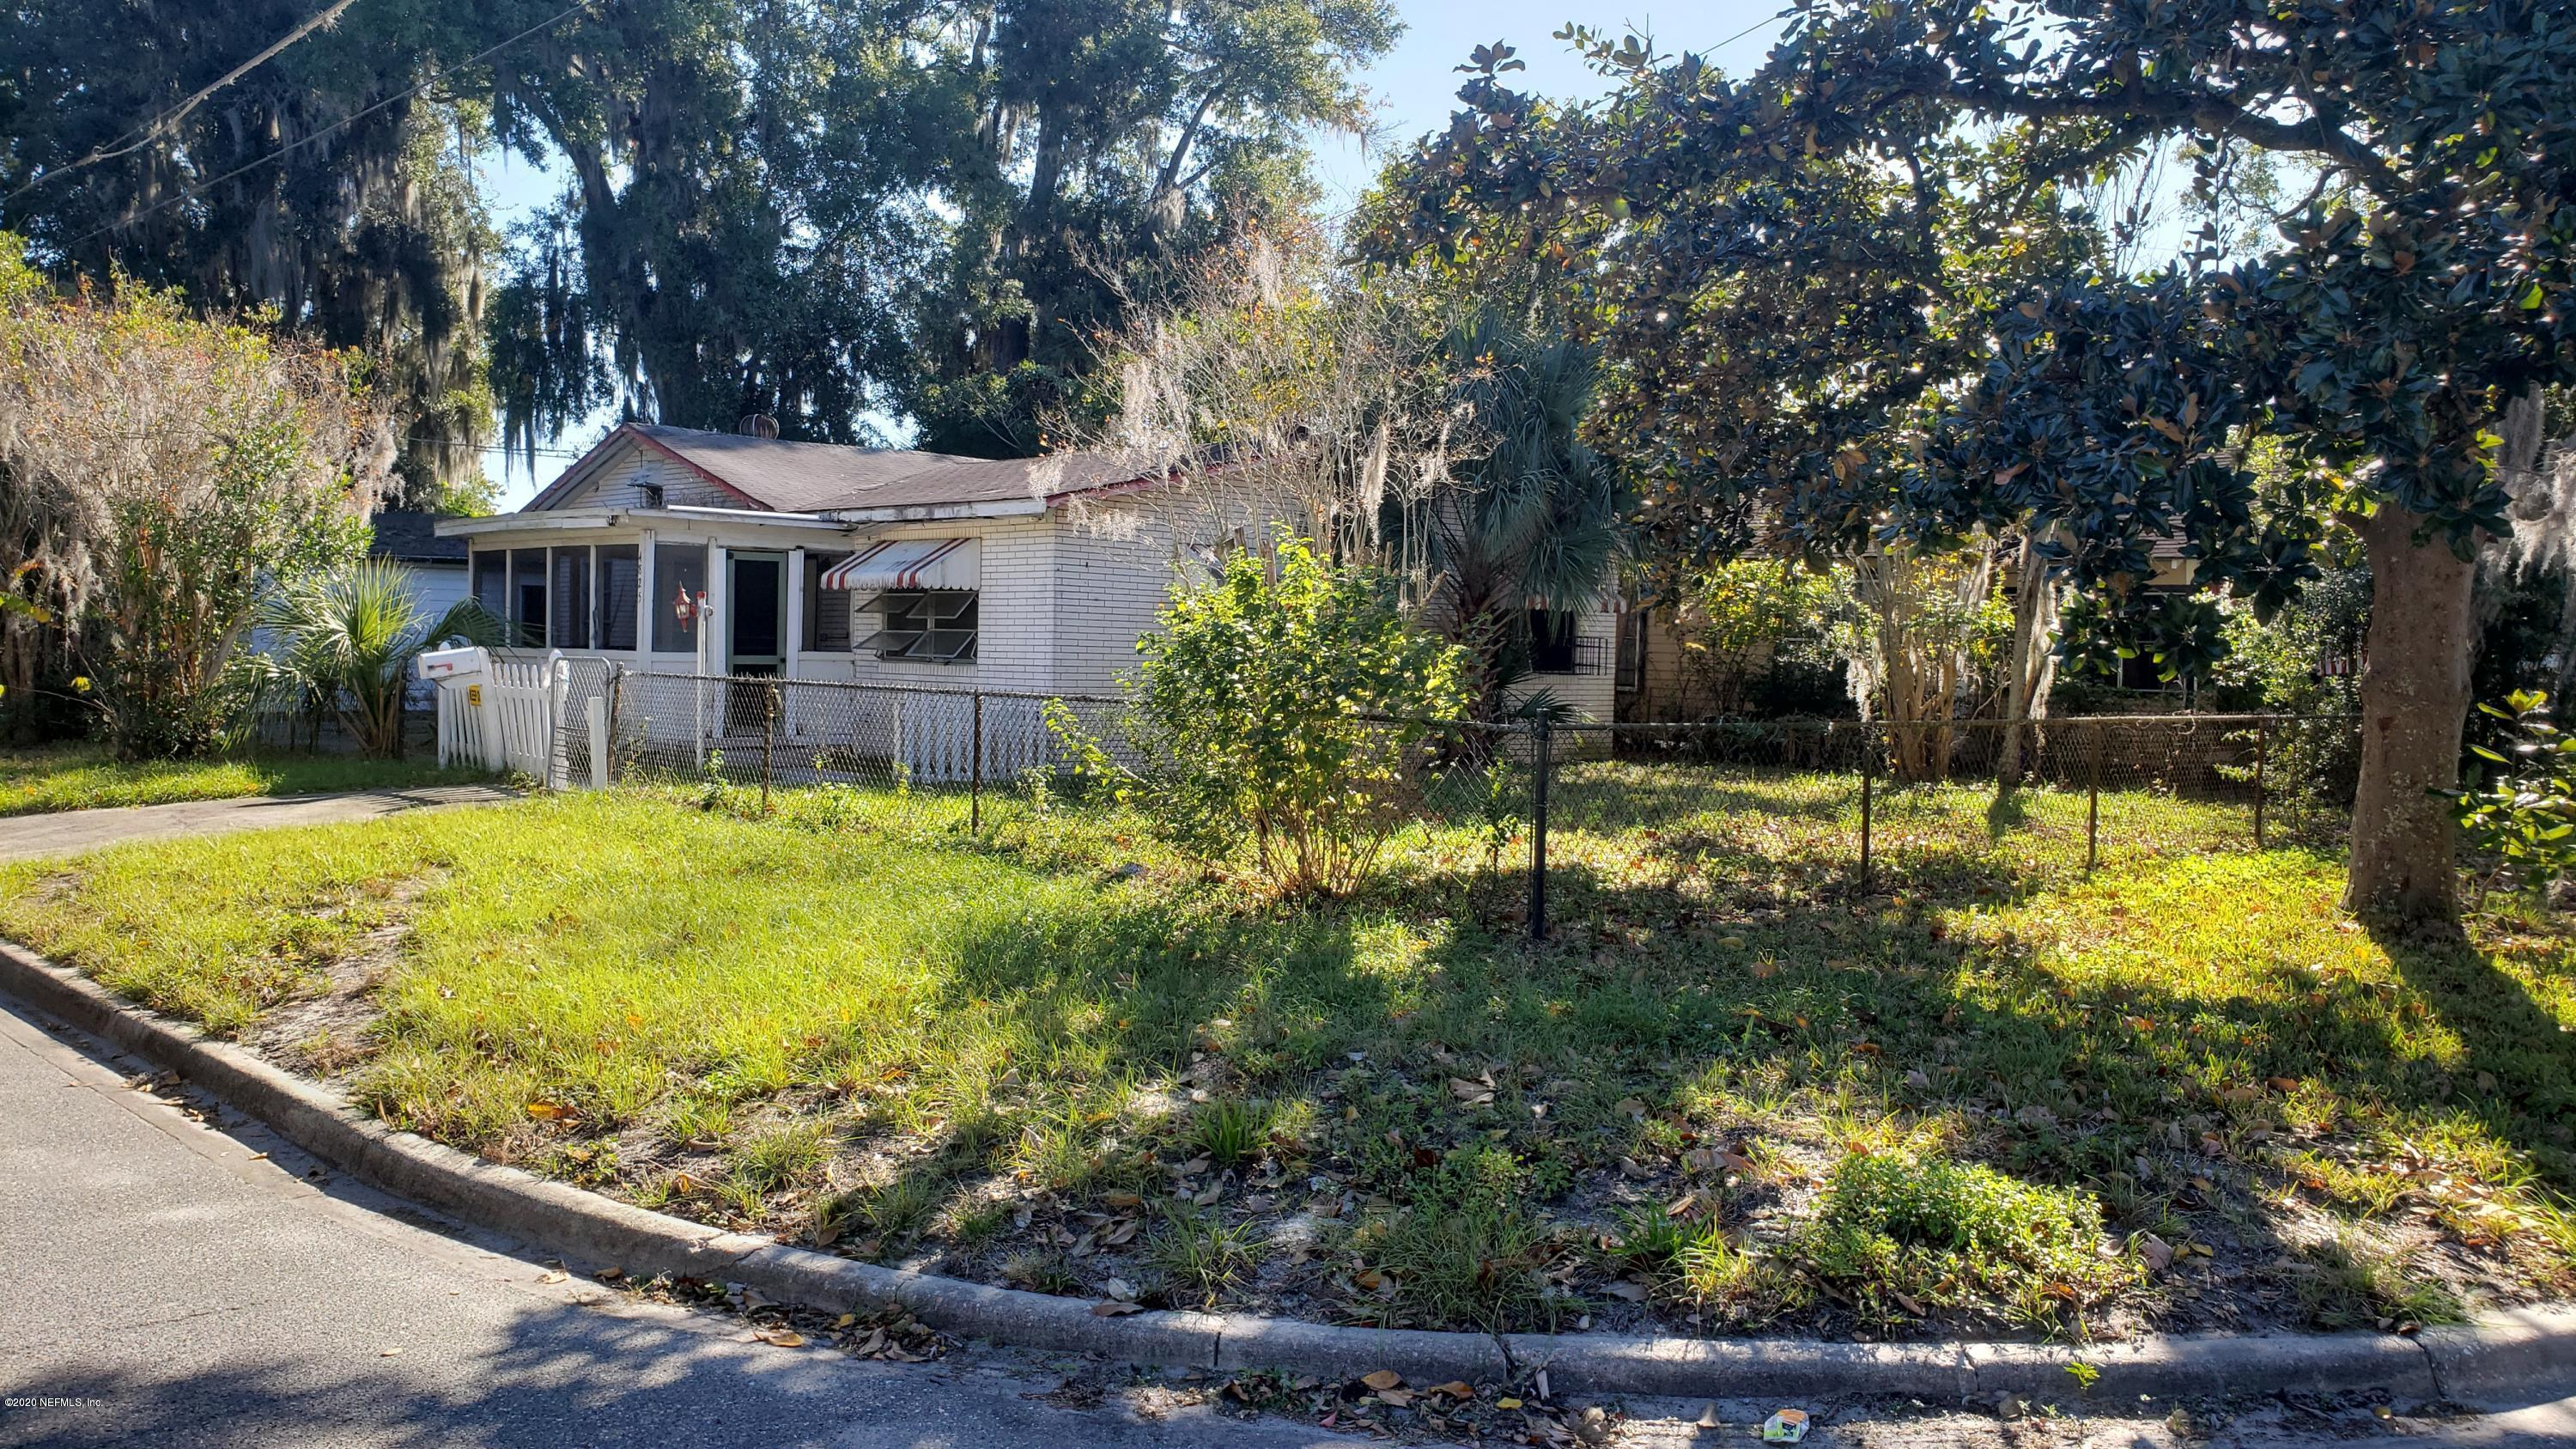 4825 SILVER, JACKSONVILLE, FLORIDA 32206, 3 Bedrooms Bedrooms, ,1 BathroomBathrooms,Residential,For sale,SILVER,1079906